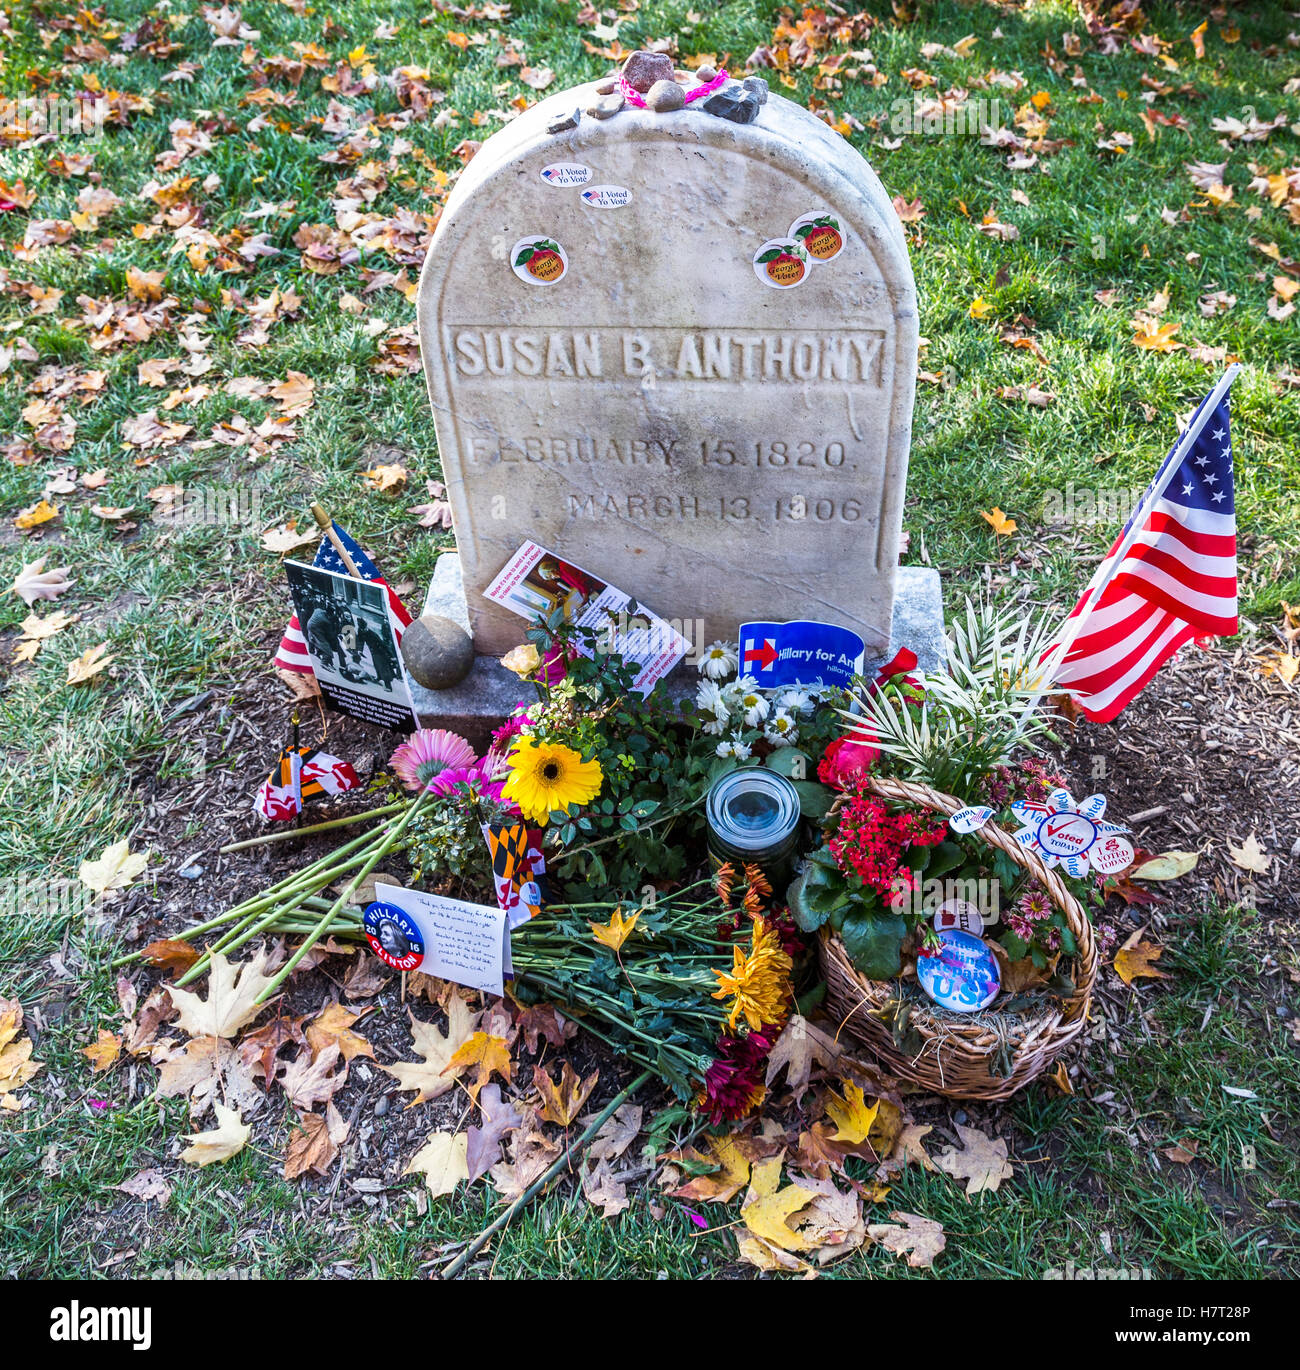 Susan B. Anthony women rights leader gravestone covered with 2016 USA presidential election stickers, personal notes, - Stock Image